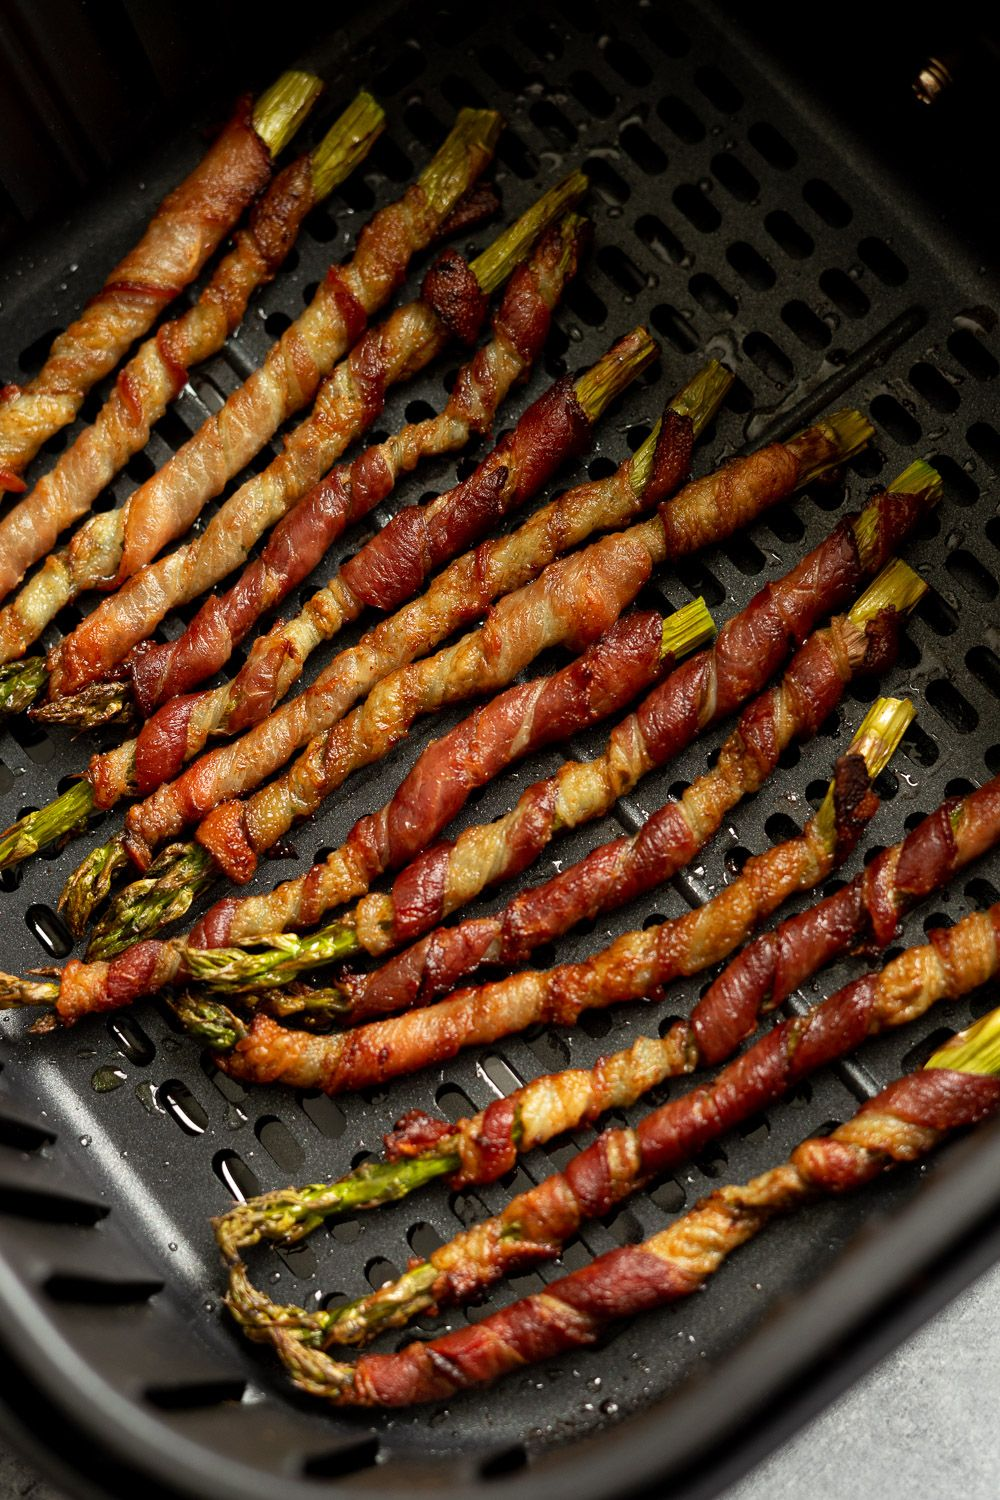 Bacon Wrapped Asparagus Air Fryer Recipe